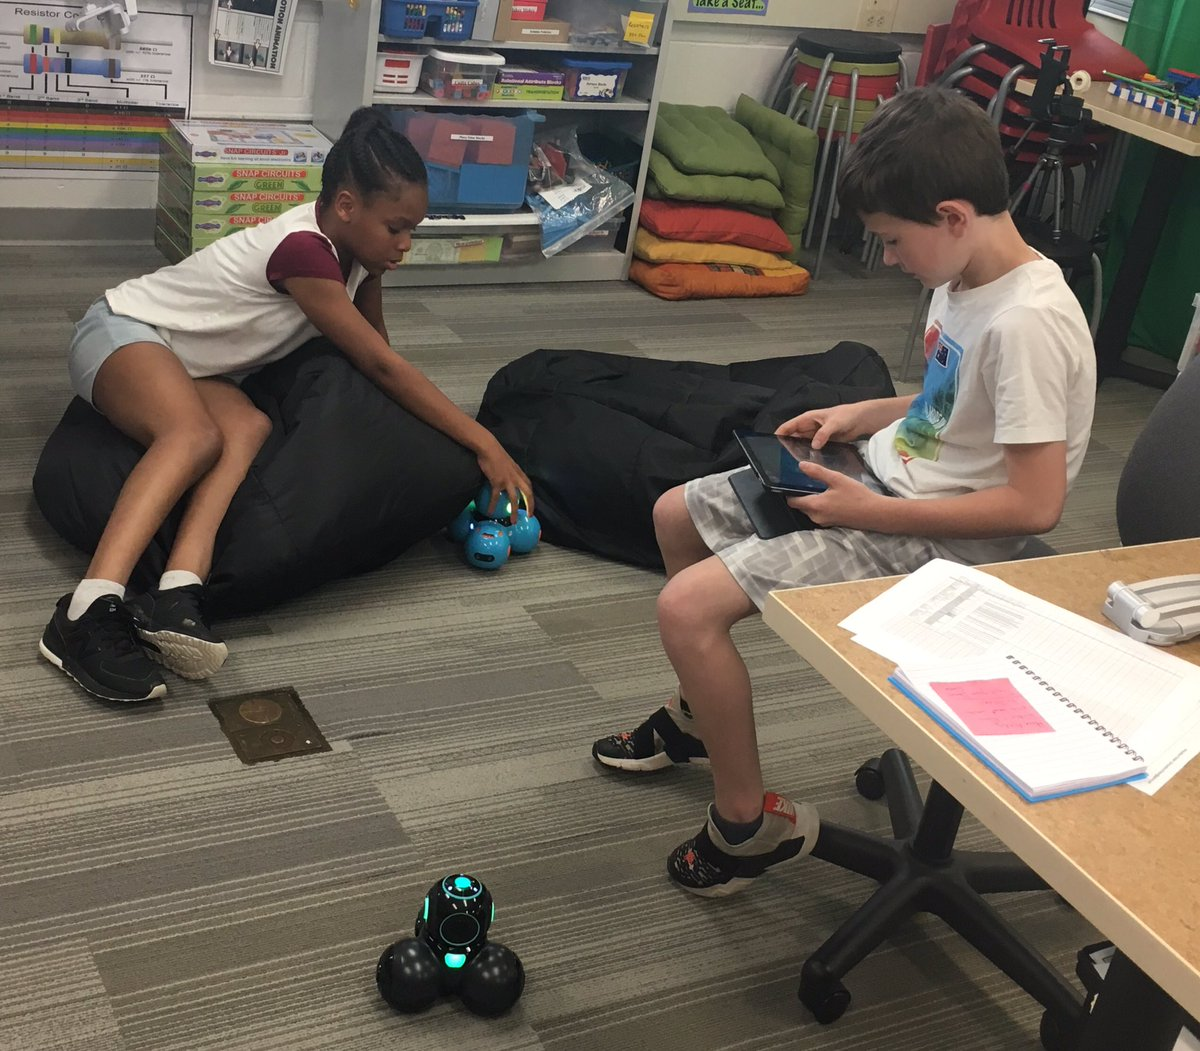 Lucky to have these <a target='_blank' href='http://twitter.com/AbingdonGIFT'>@AbingdonGIFT</a> friends to help me explore some new <a target='_blank' href='http://twitter.com/WonderWorkshop'>@WonderWorkshop</a>. Checking out the <a target='_blank' href='http://search.twitter.com/search?q=DashandDot'><a target='_blank' href='https://twitter.com/hashtag/DashandDot?src=hash'>#DashandDot</a></a> and <a target='_blank' href='http://search.twitter.com/search?q=Cue'><a target='_blank' href='https://twitter.com/hashtag/Cue?src=hash'>#Cue</a></a> robots 🤖 <a target='_blank' href='https://t.co/GoYwJxp0kp'>https://t.co/GoYwJxp0kp</a>